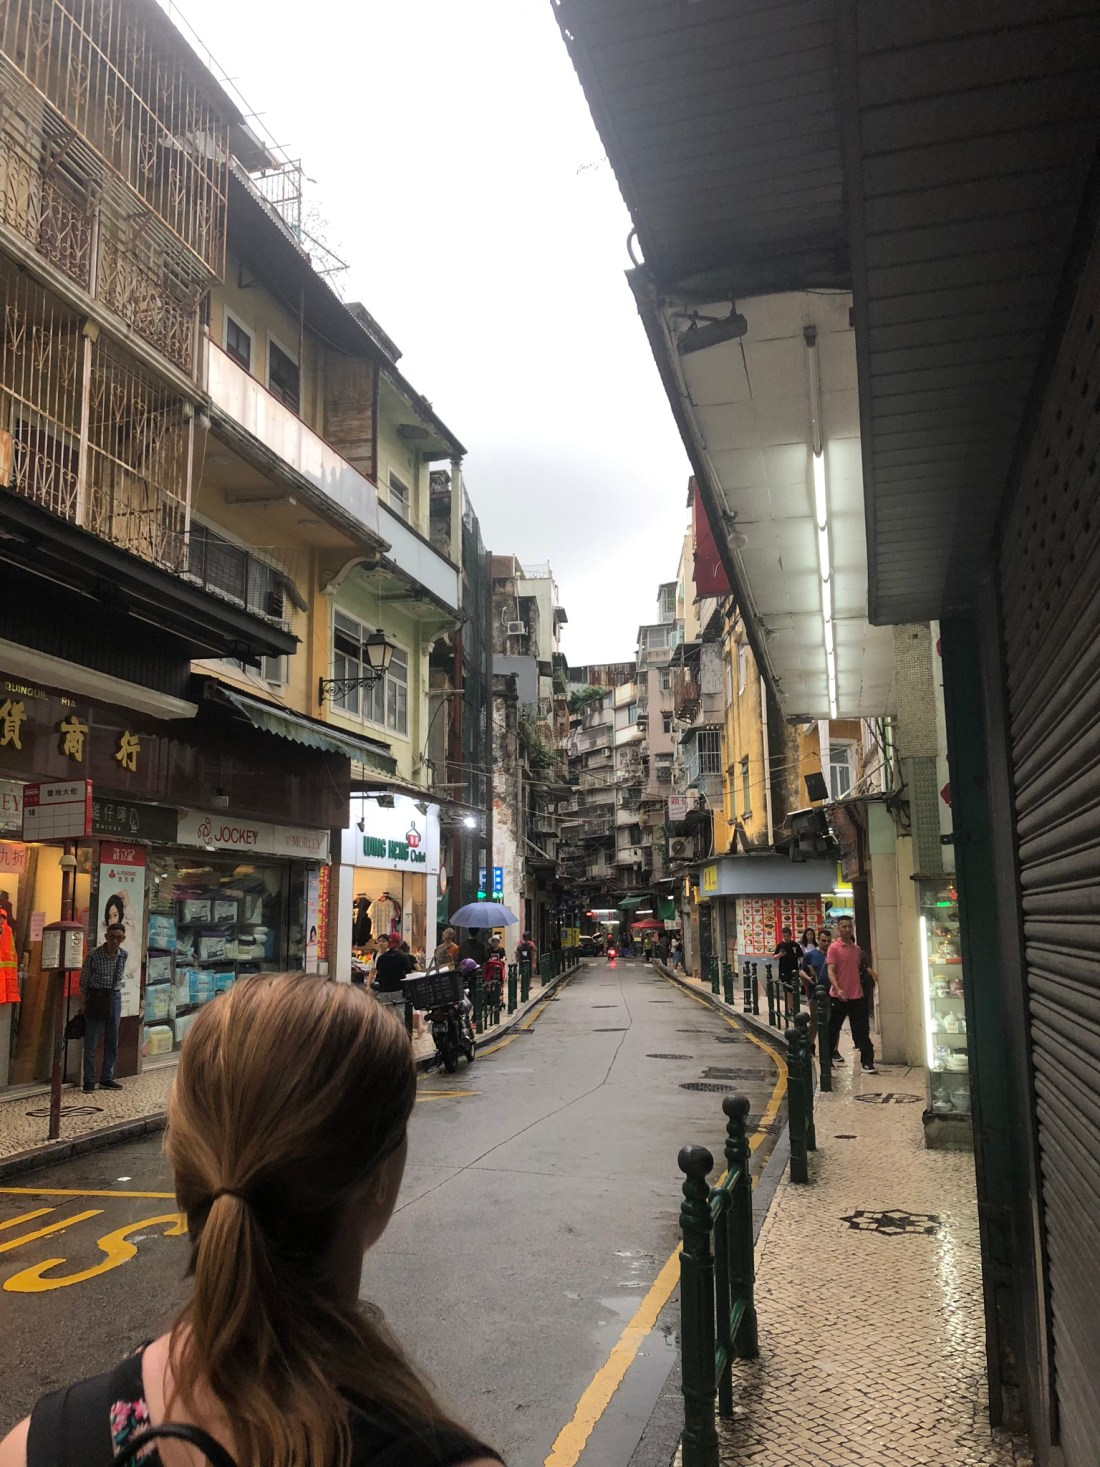 Exploring the streets of Macau, China